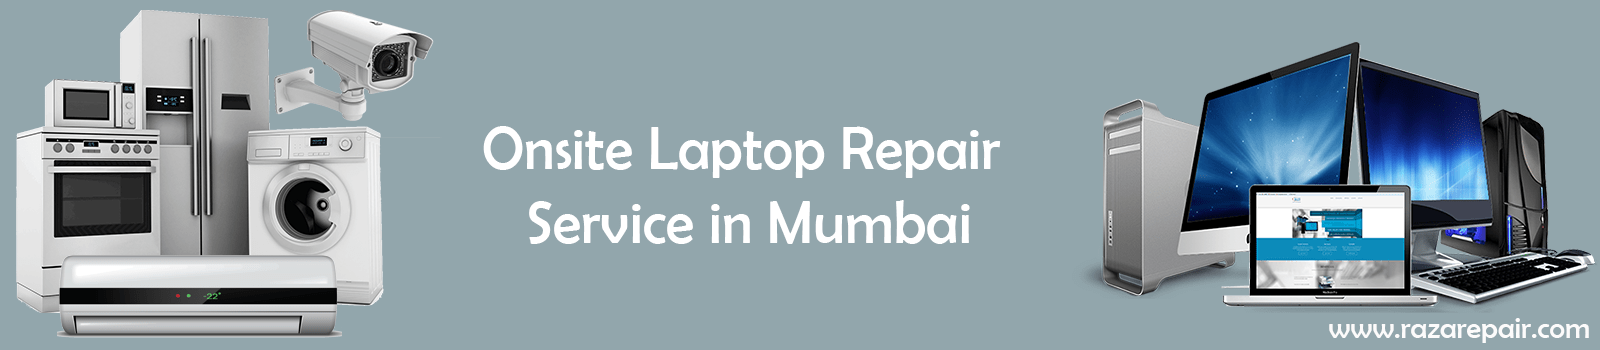 Onsite Laptop Repair Service in Mumbai | Call Now 8655112626